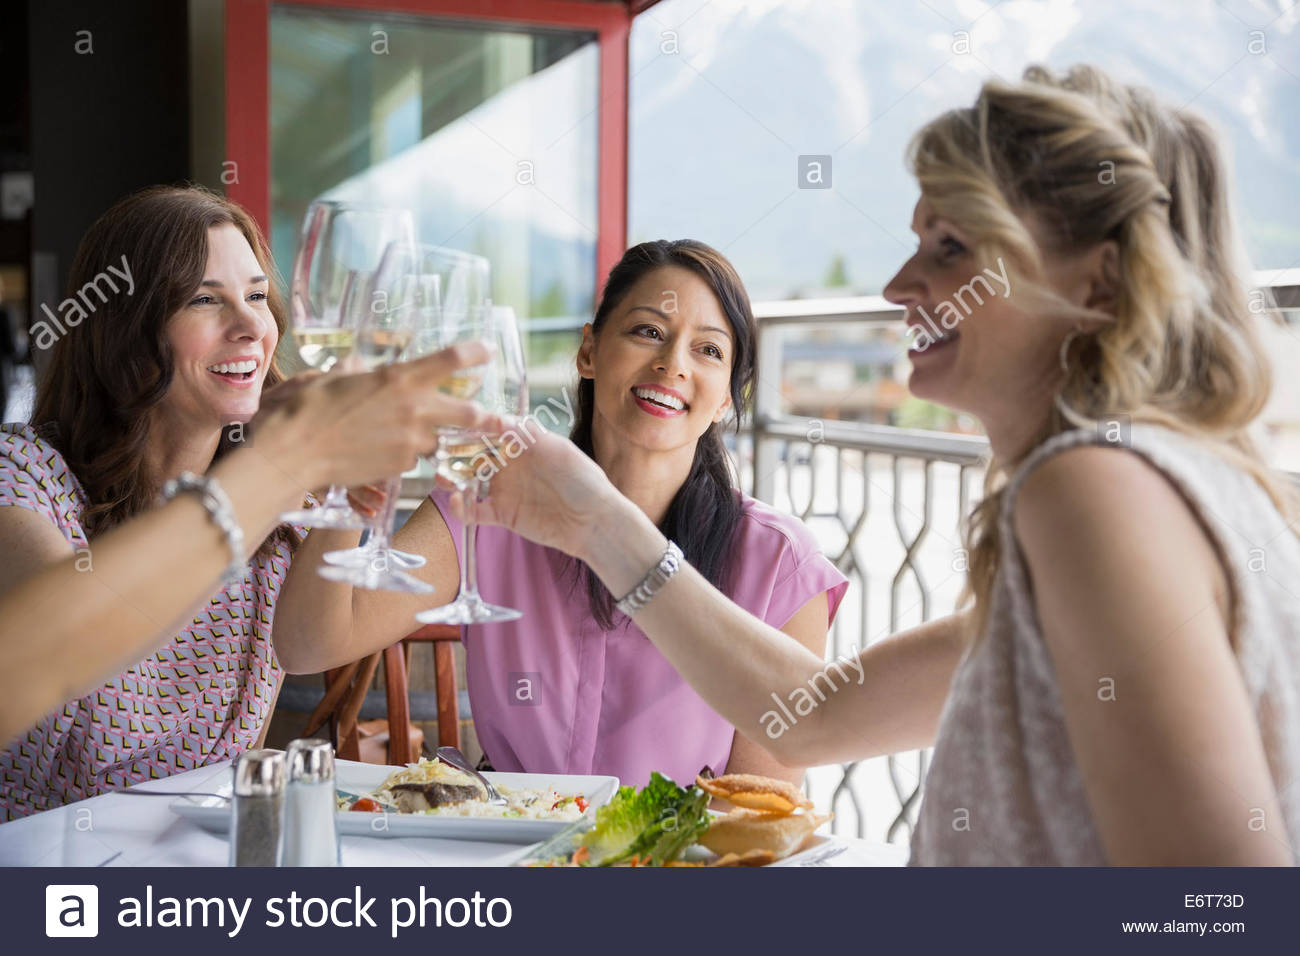 Women toasting each other in restaurant - Stock Image